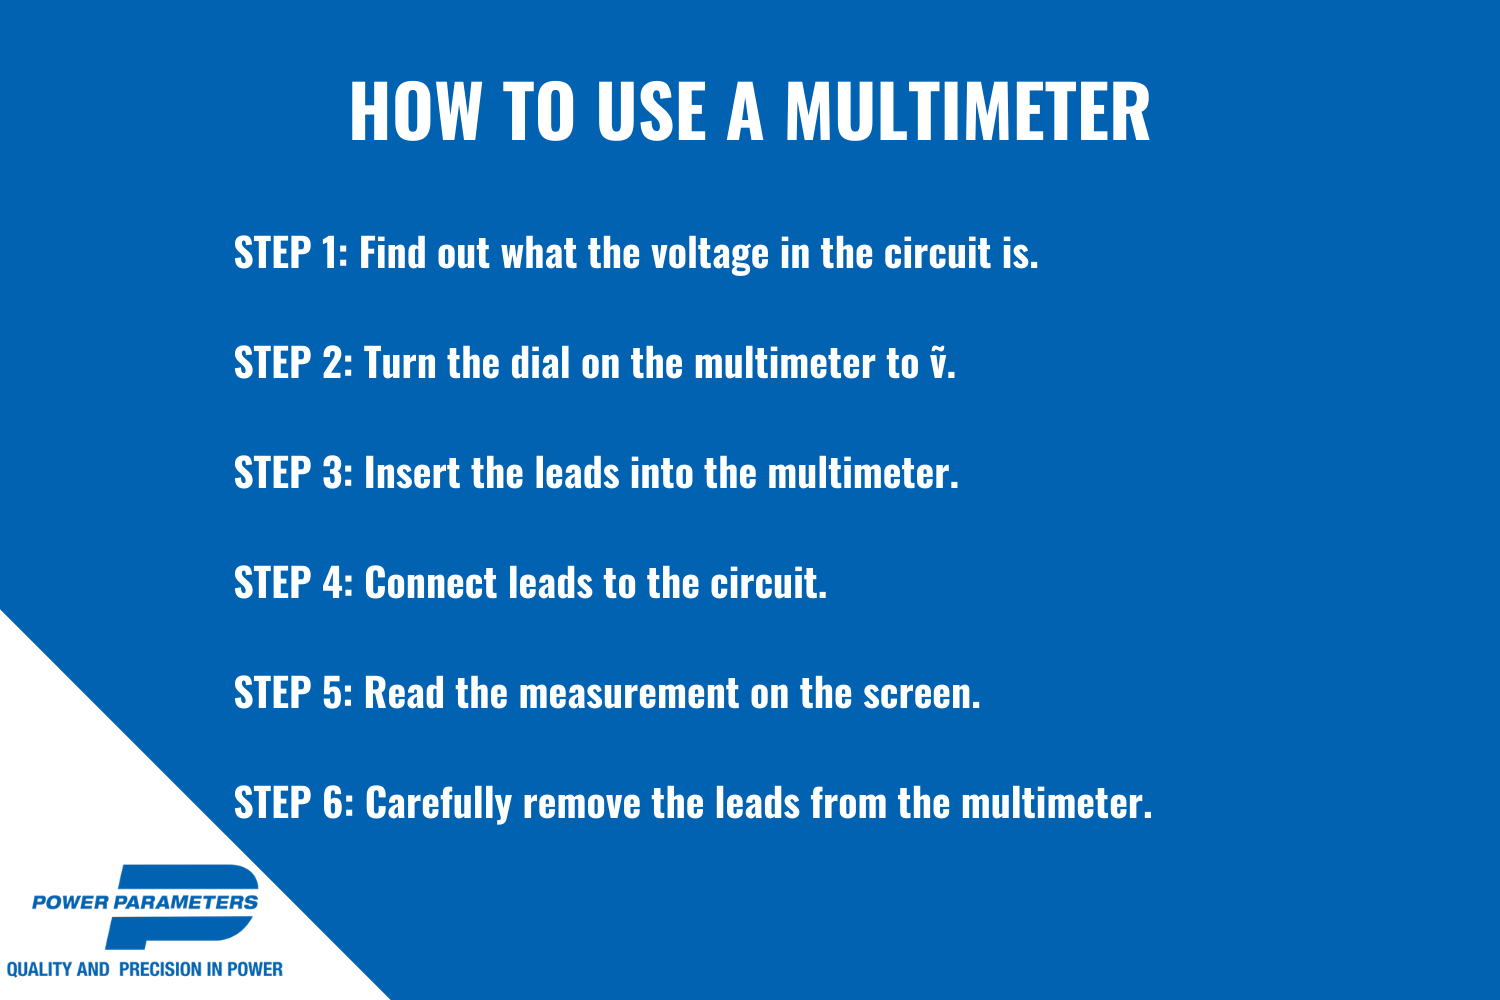 how to use a multimeter infographic